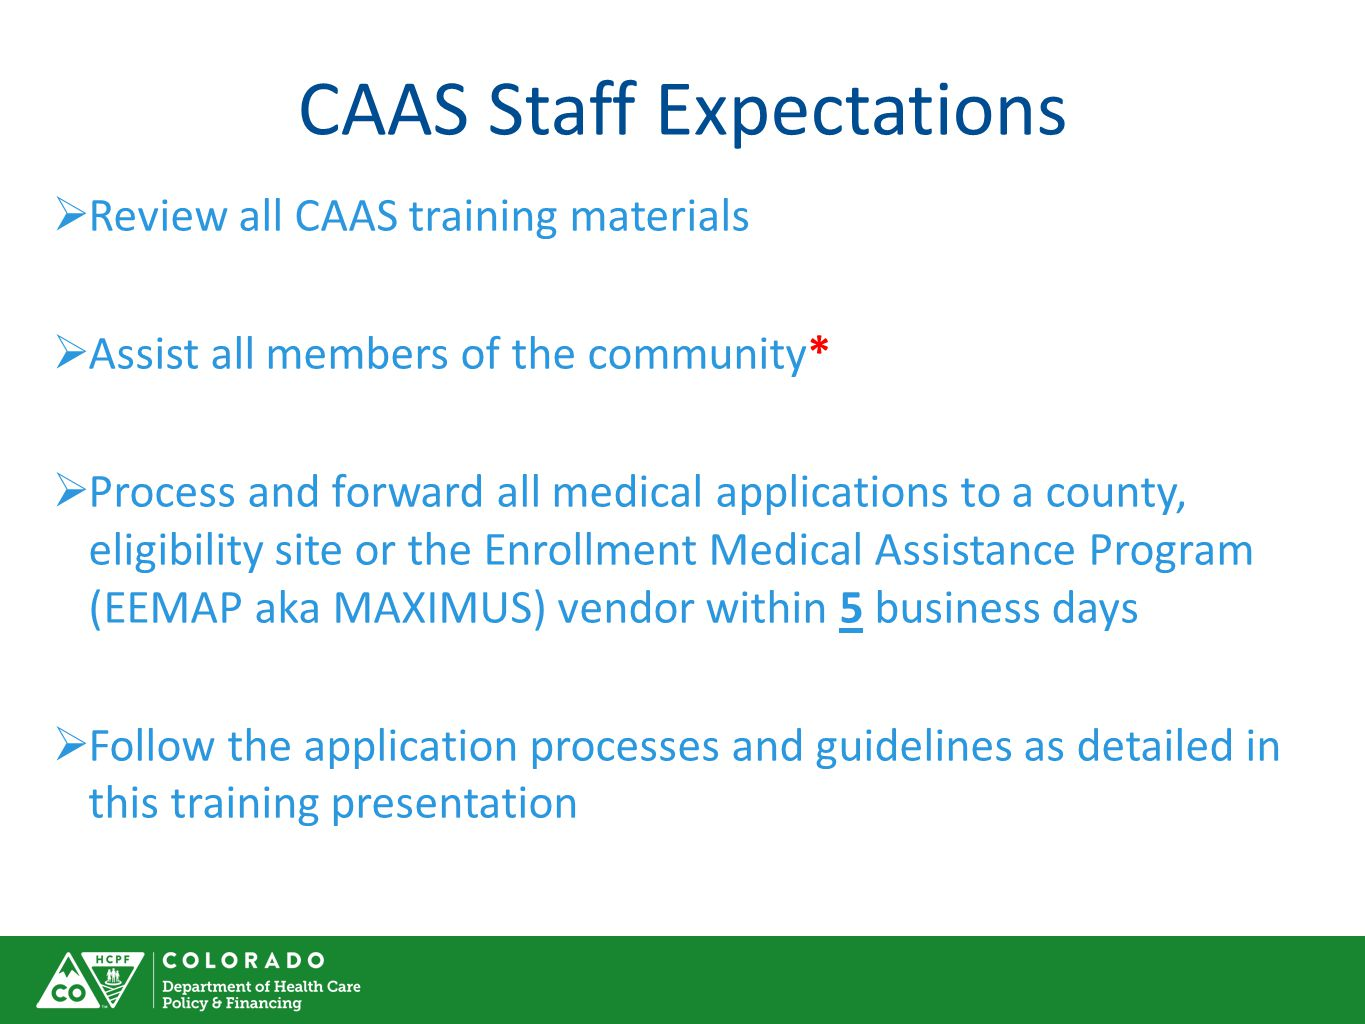 CAAS Staff Expectations  Review all CAAS training materials  Assist all members of the community*  Process and forward all medical applications to a county, eligibility site or the Enrollment Medical Assistance Program (EEMAP aka MAXIMUS) vendor within 5 business days  Follow the application processes and guidelines as detailed in this training presentation